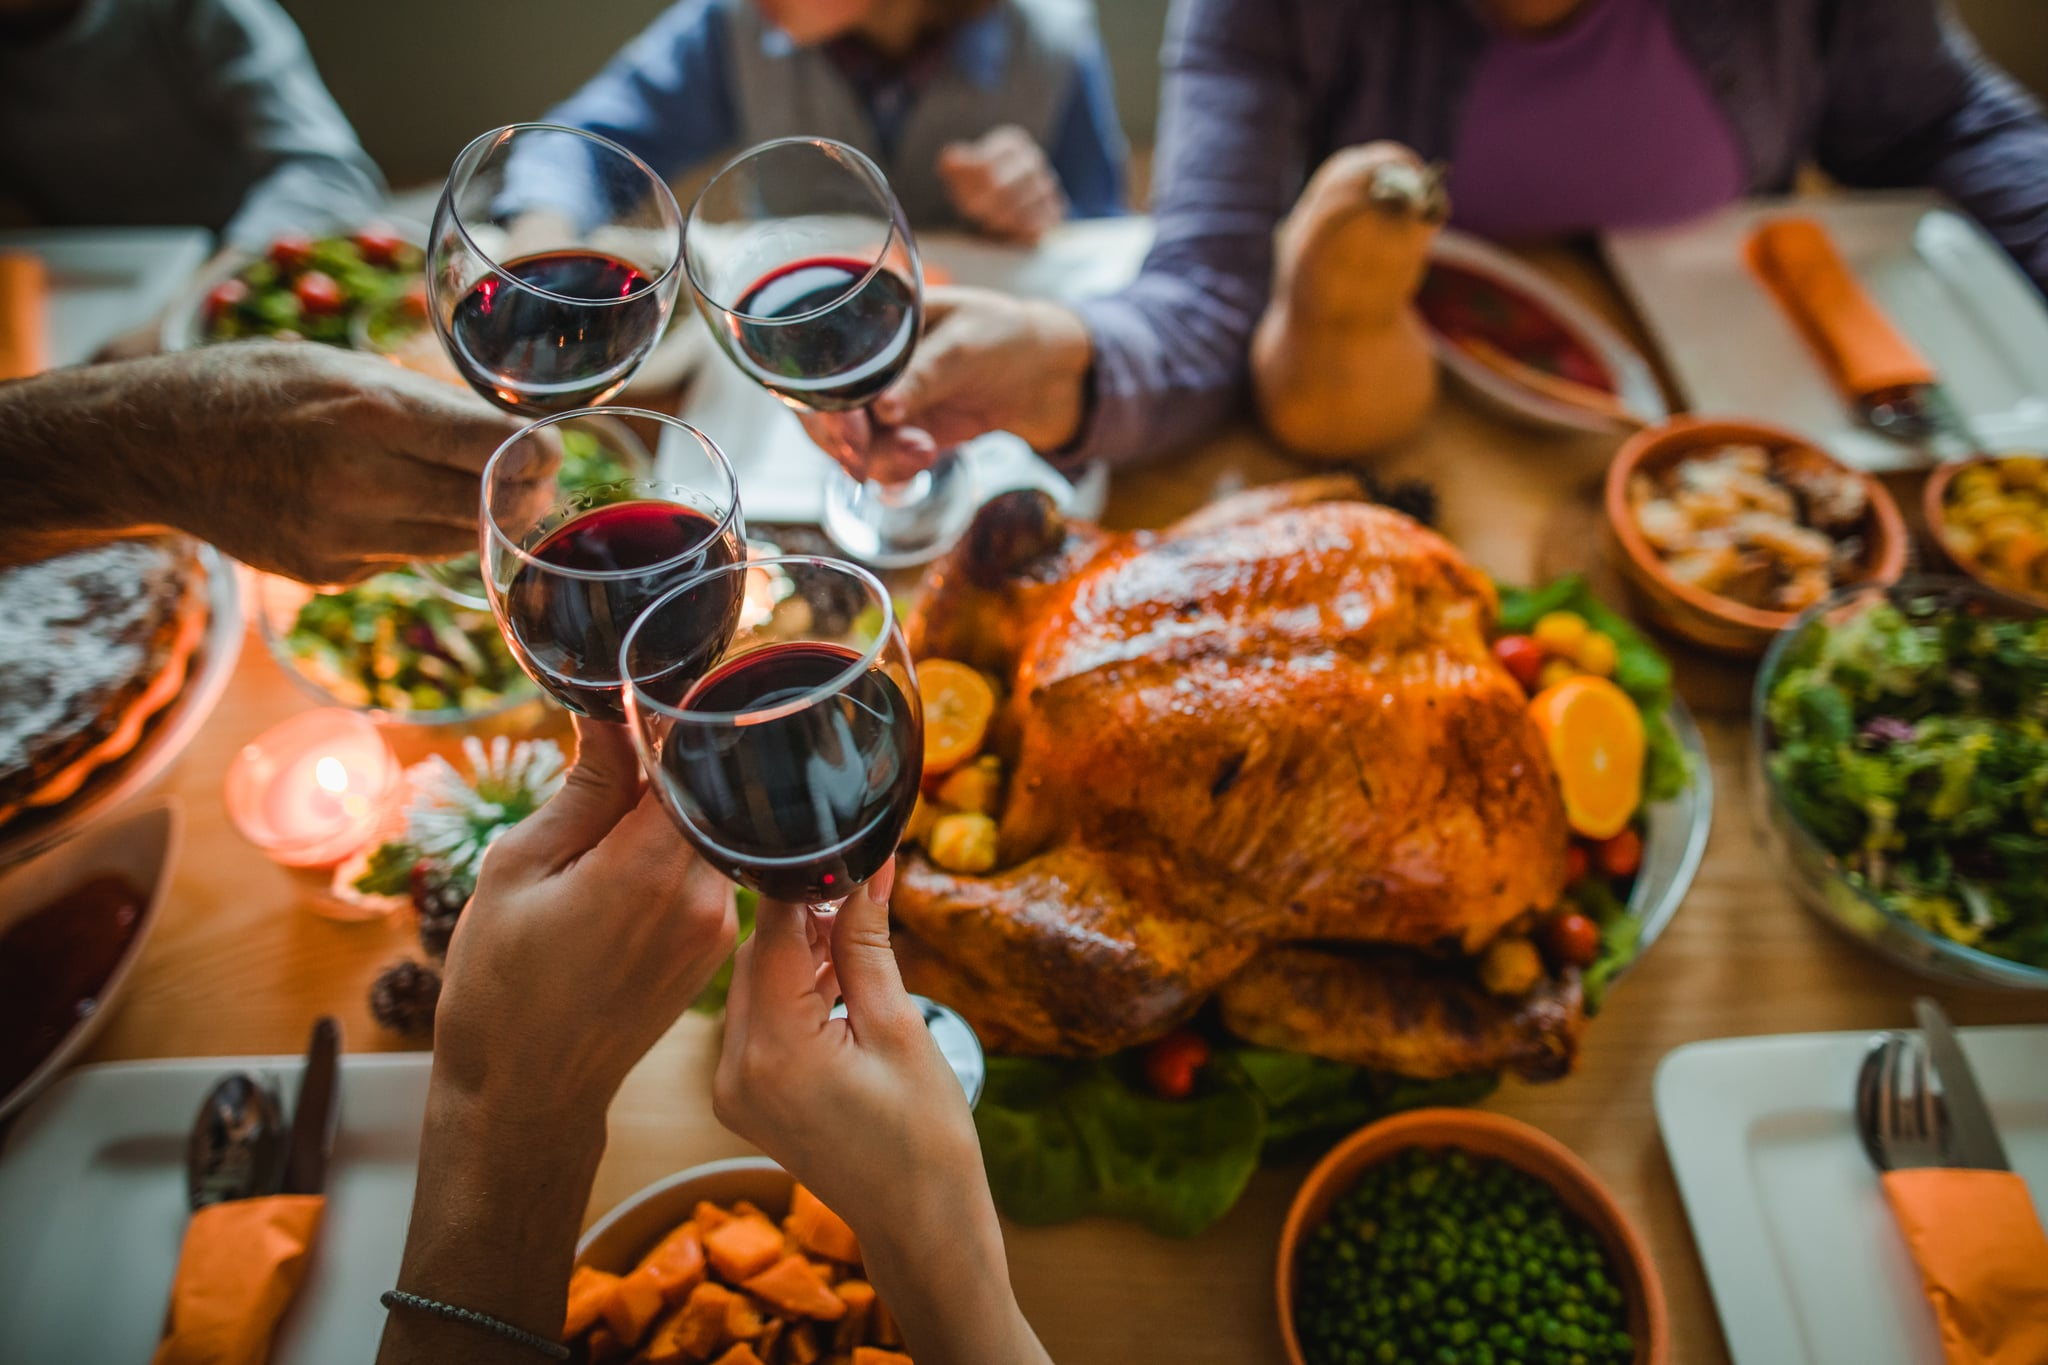 Group of unrecognizable people toasting with wine during Thanksgiving dinner at dining table.